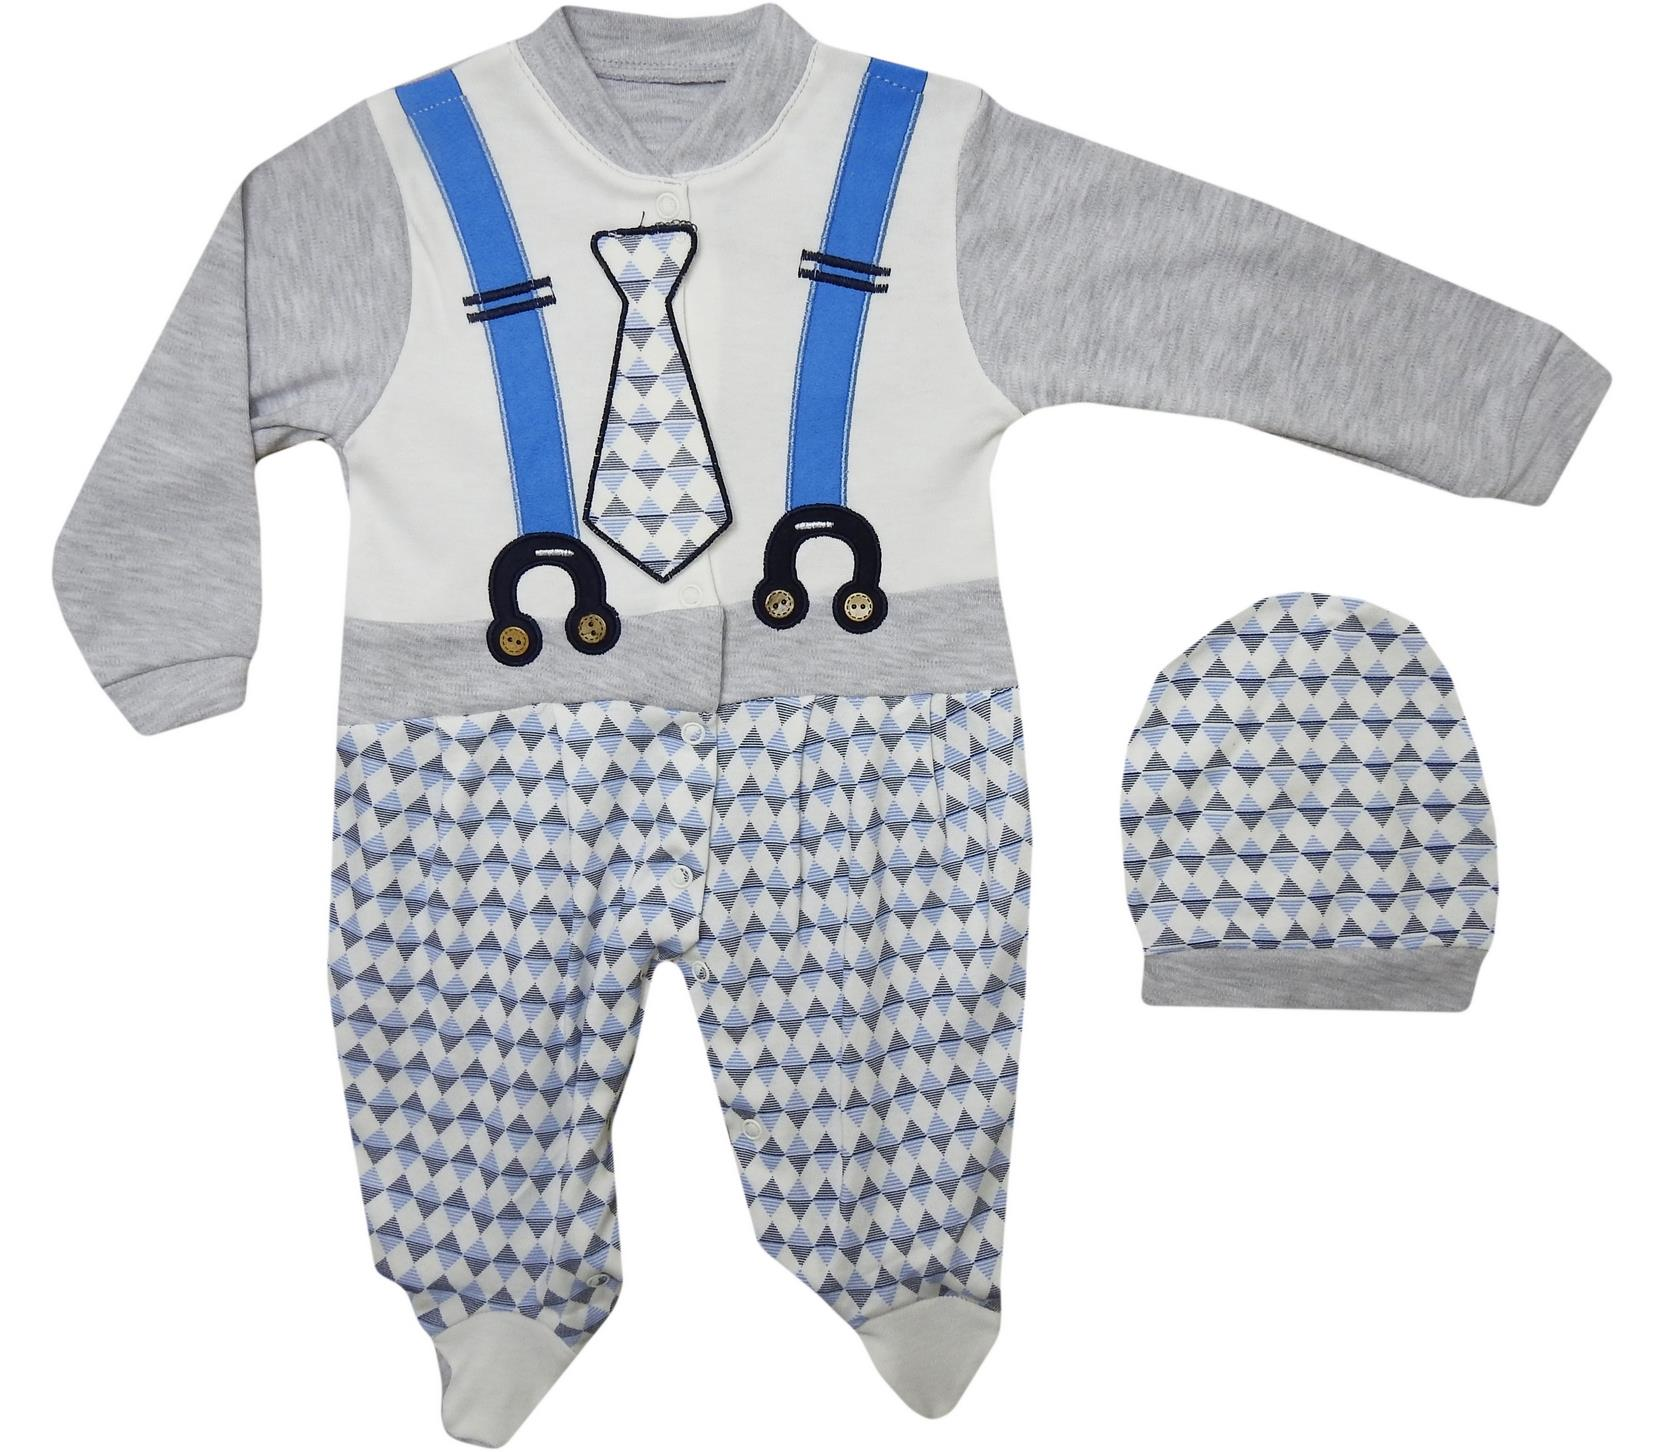 8940 Wholesale quality and cheap tie printed set for babies 3-6-9 month